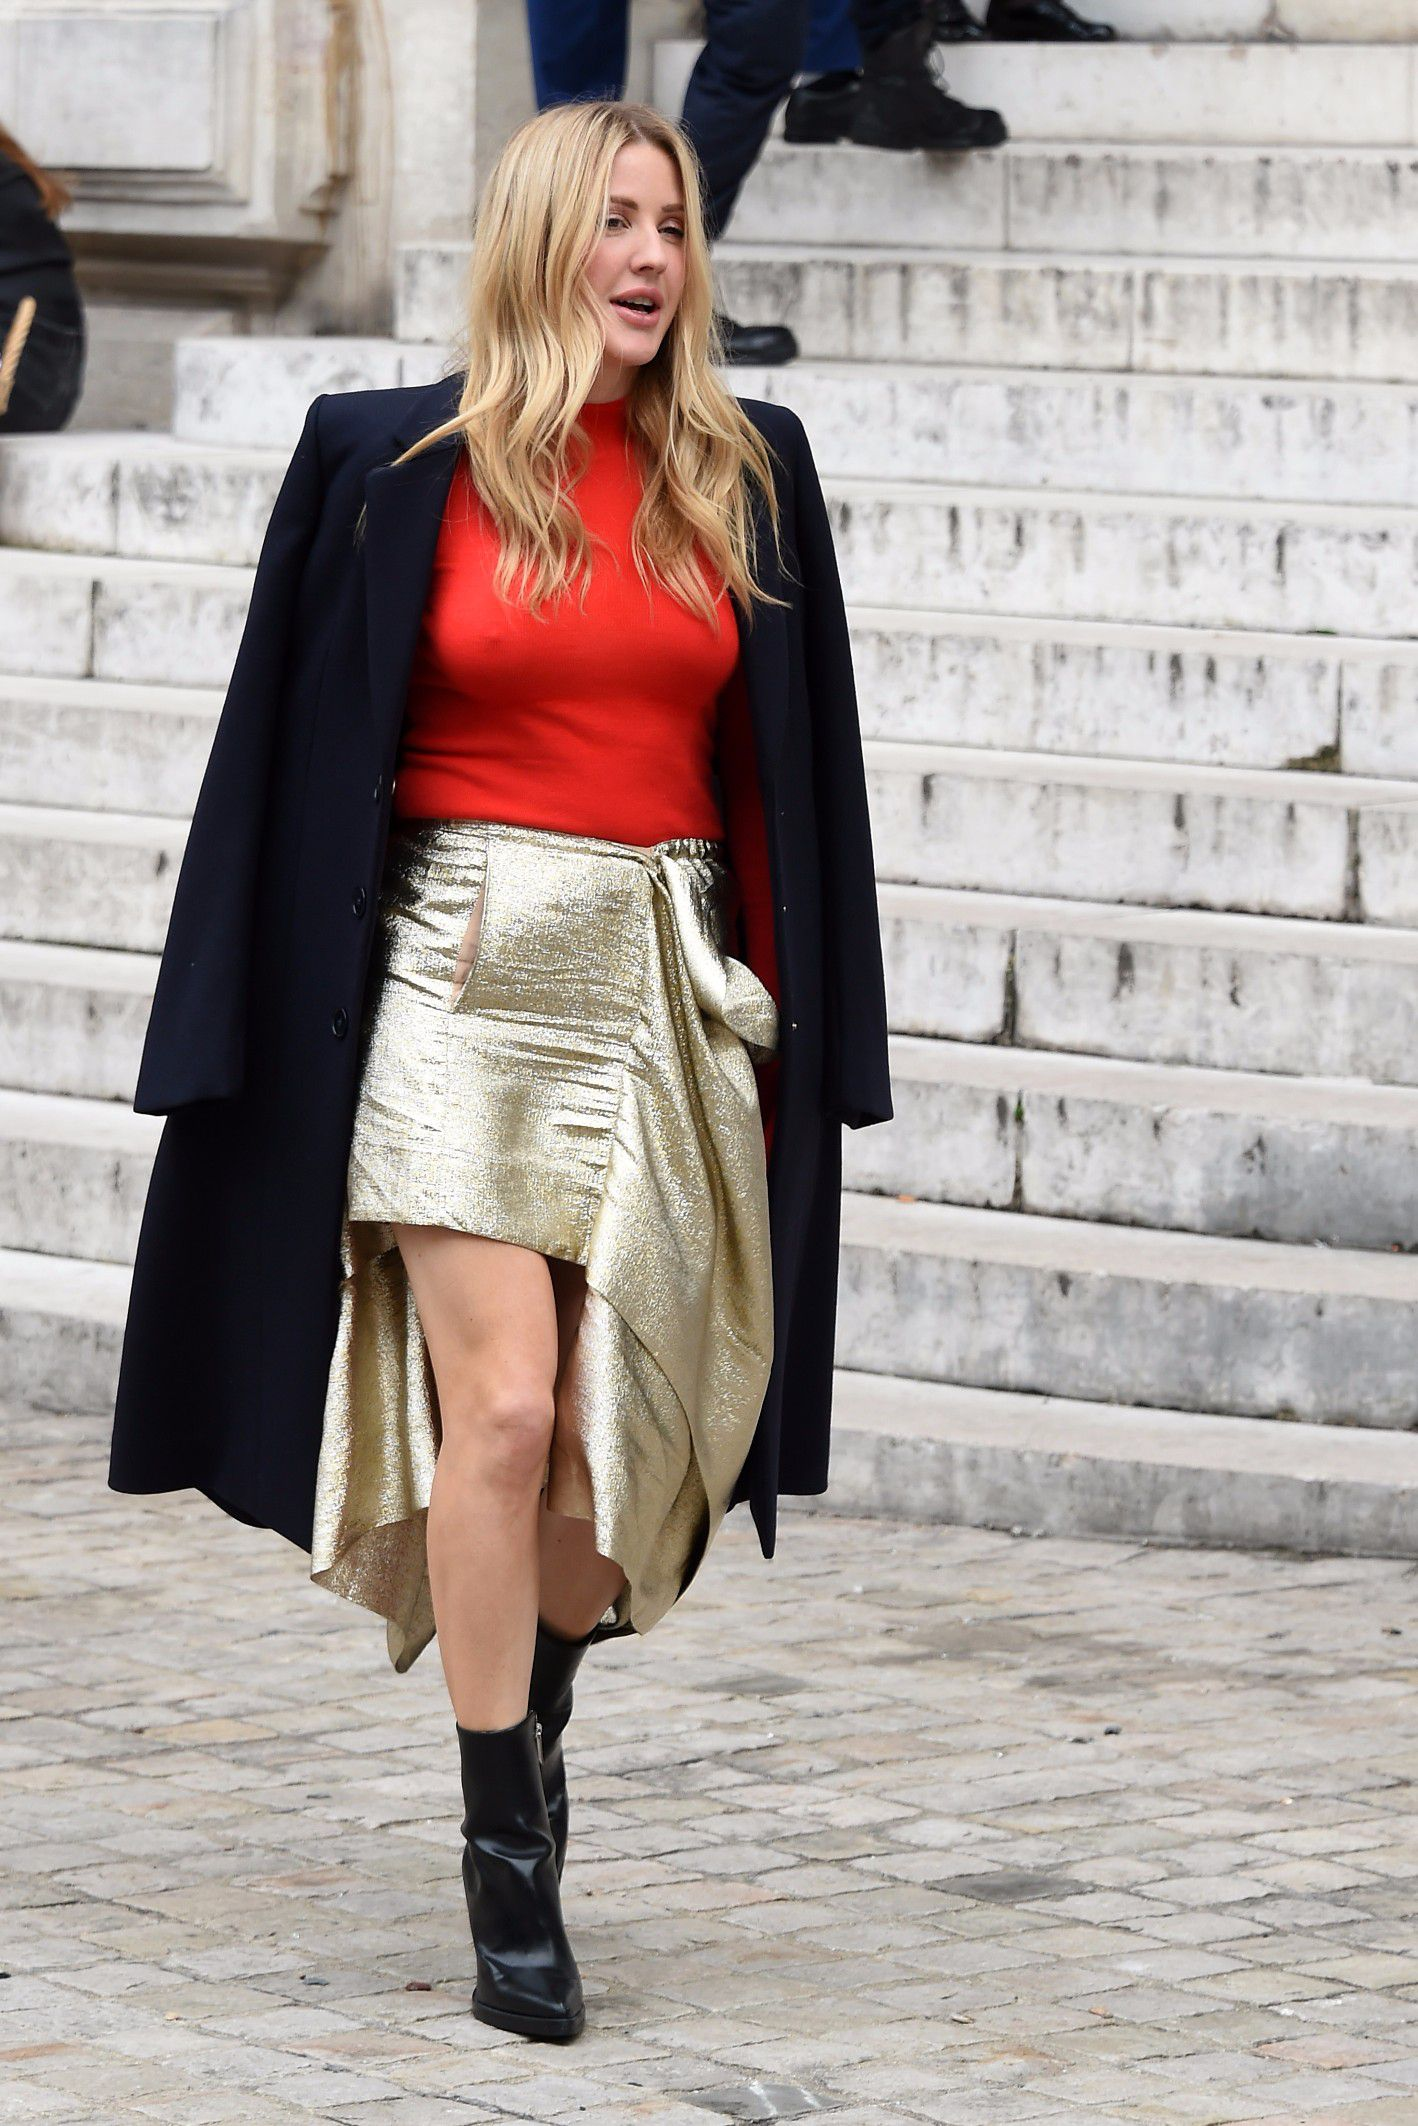 ellie-goulding-braless-in-see-thru-top-at-a-fashion-show-in-paris-6947